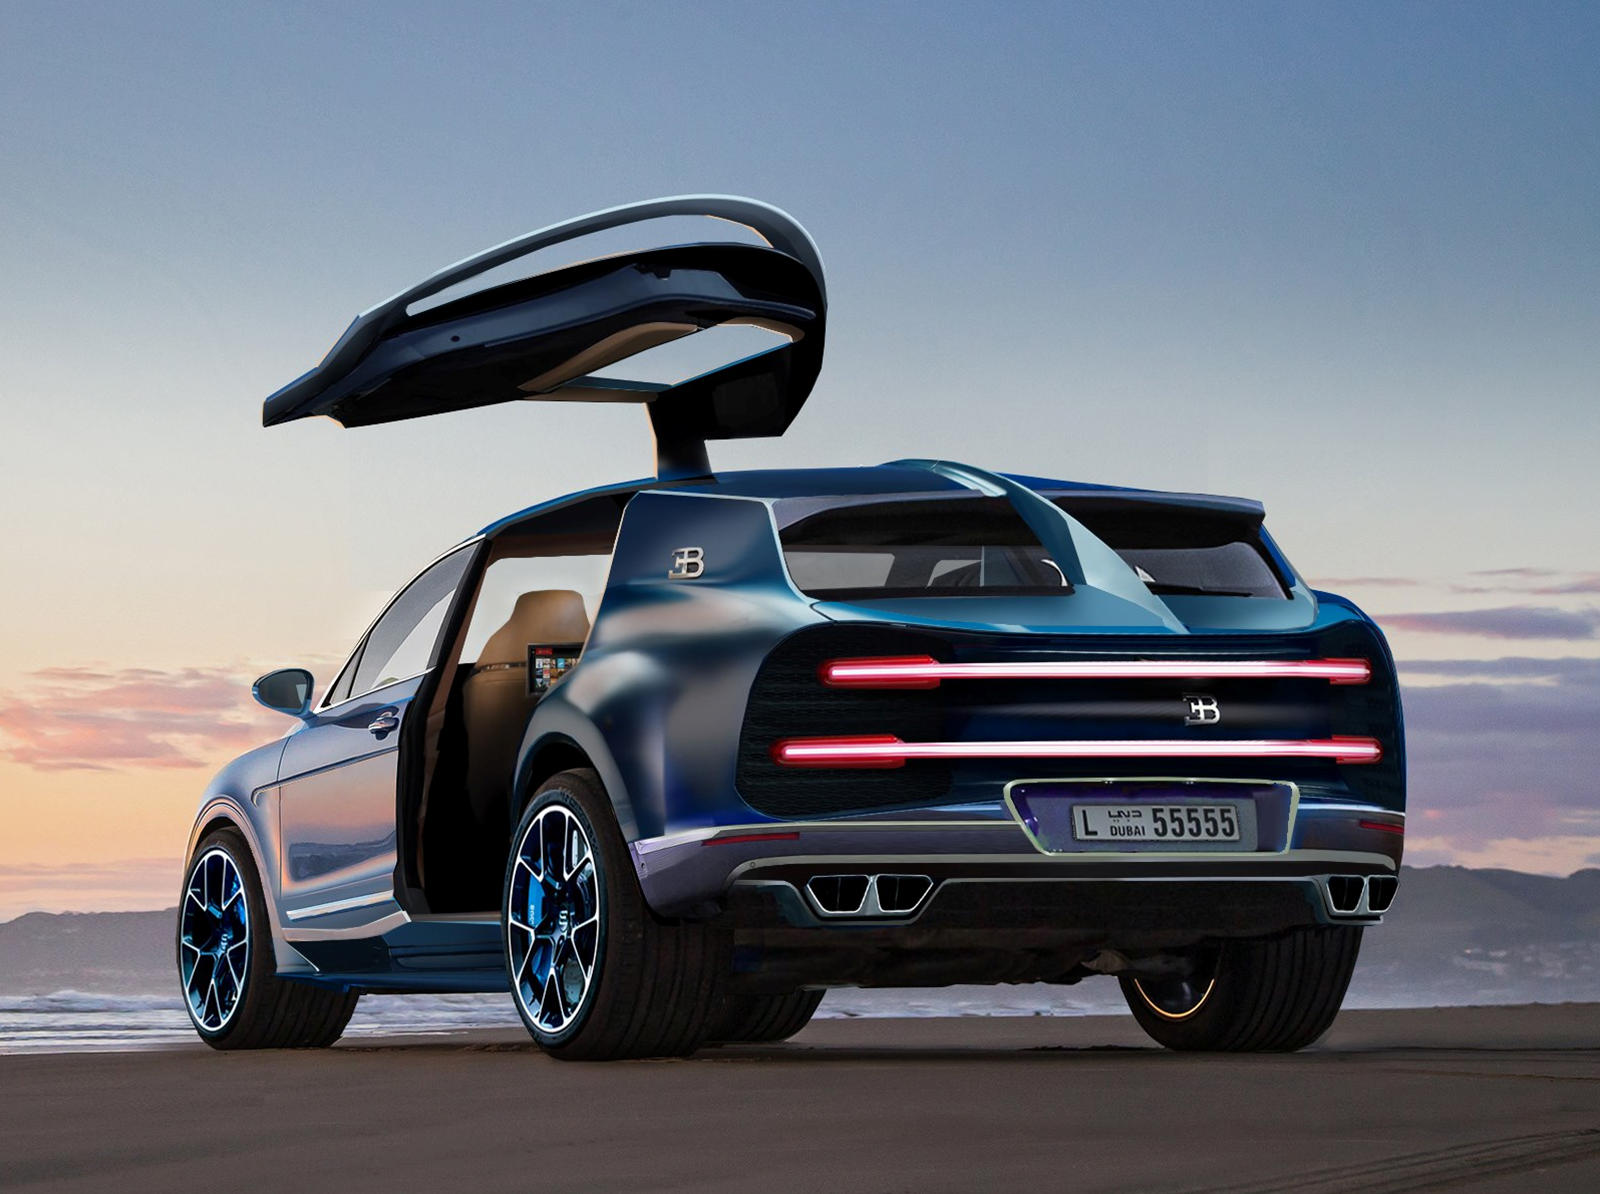 Get Ready For A Hyper-SUV Based On The Bugatti Chiron | CarBuzz